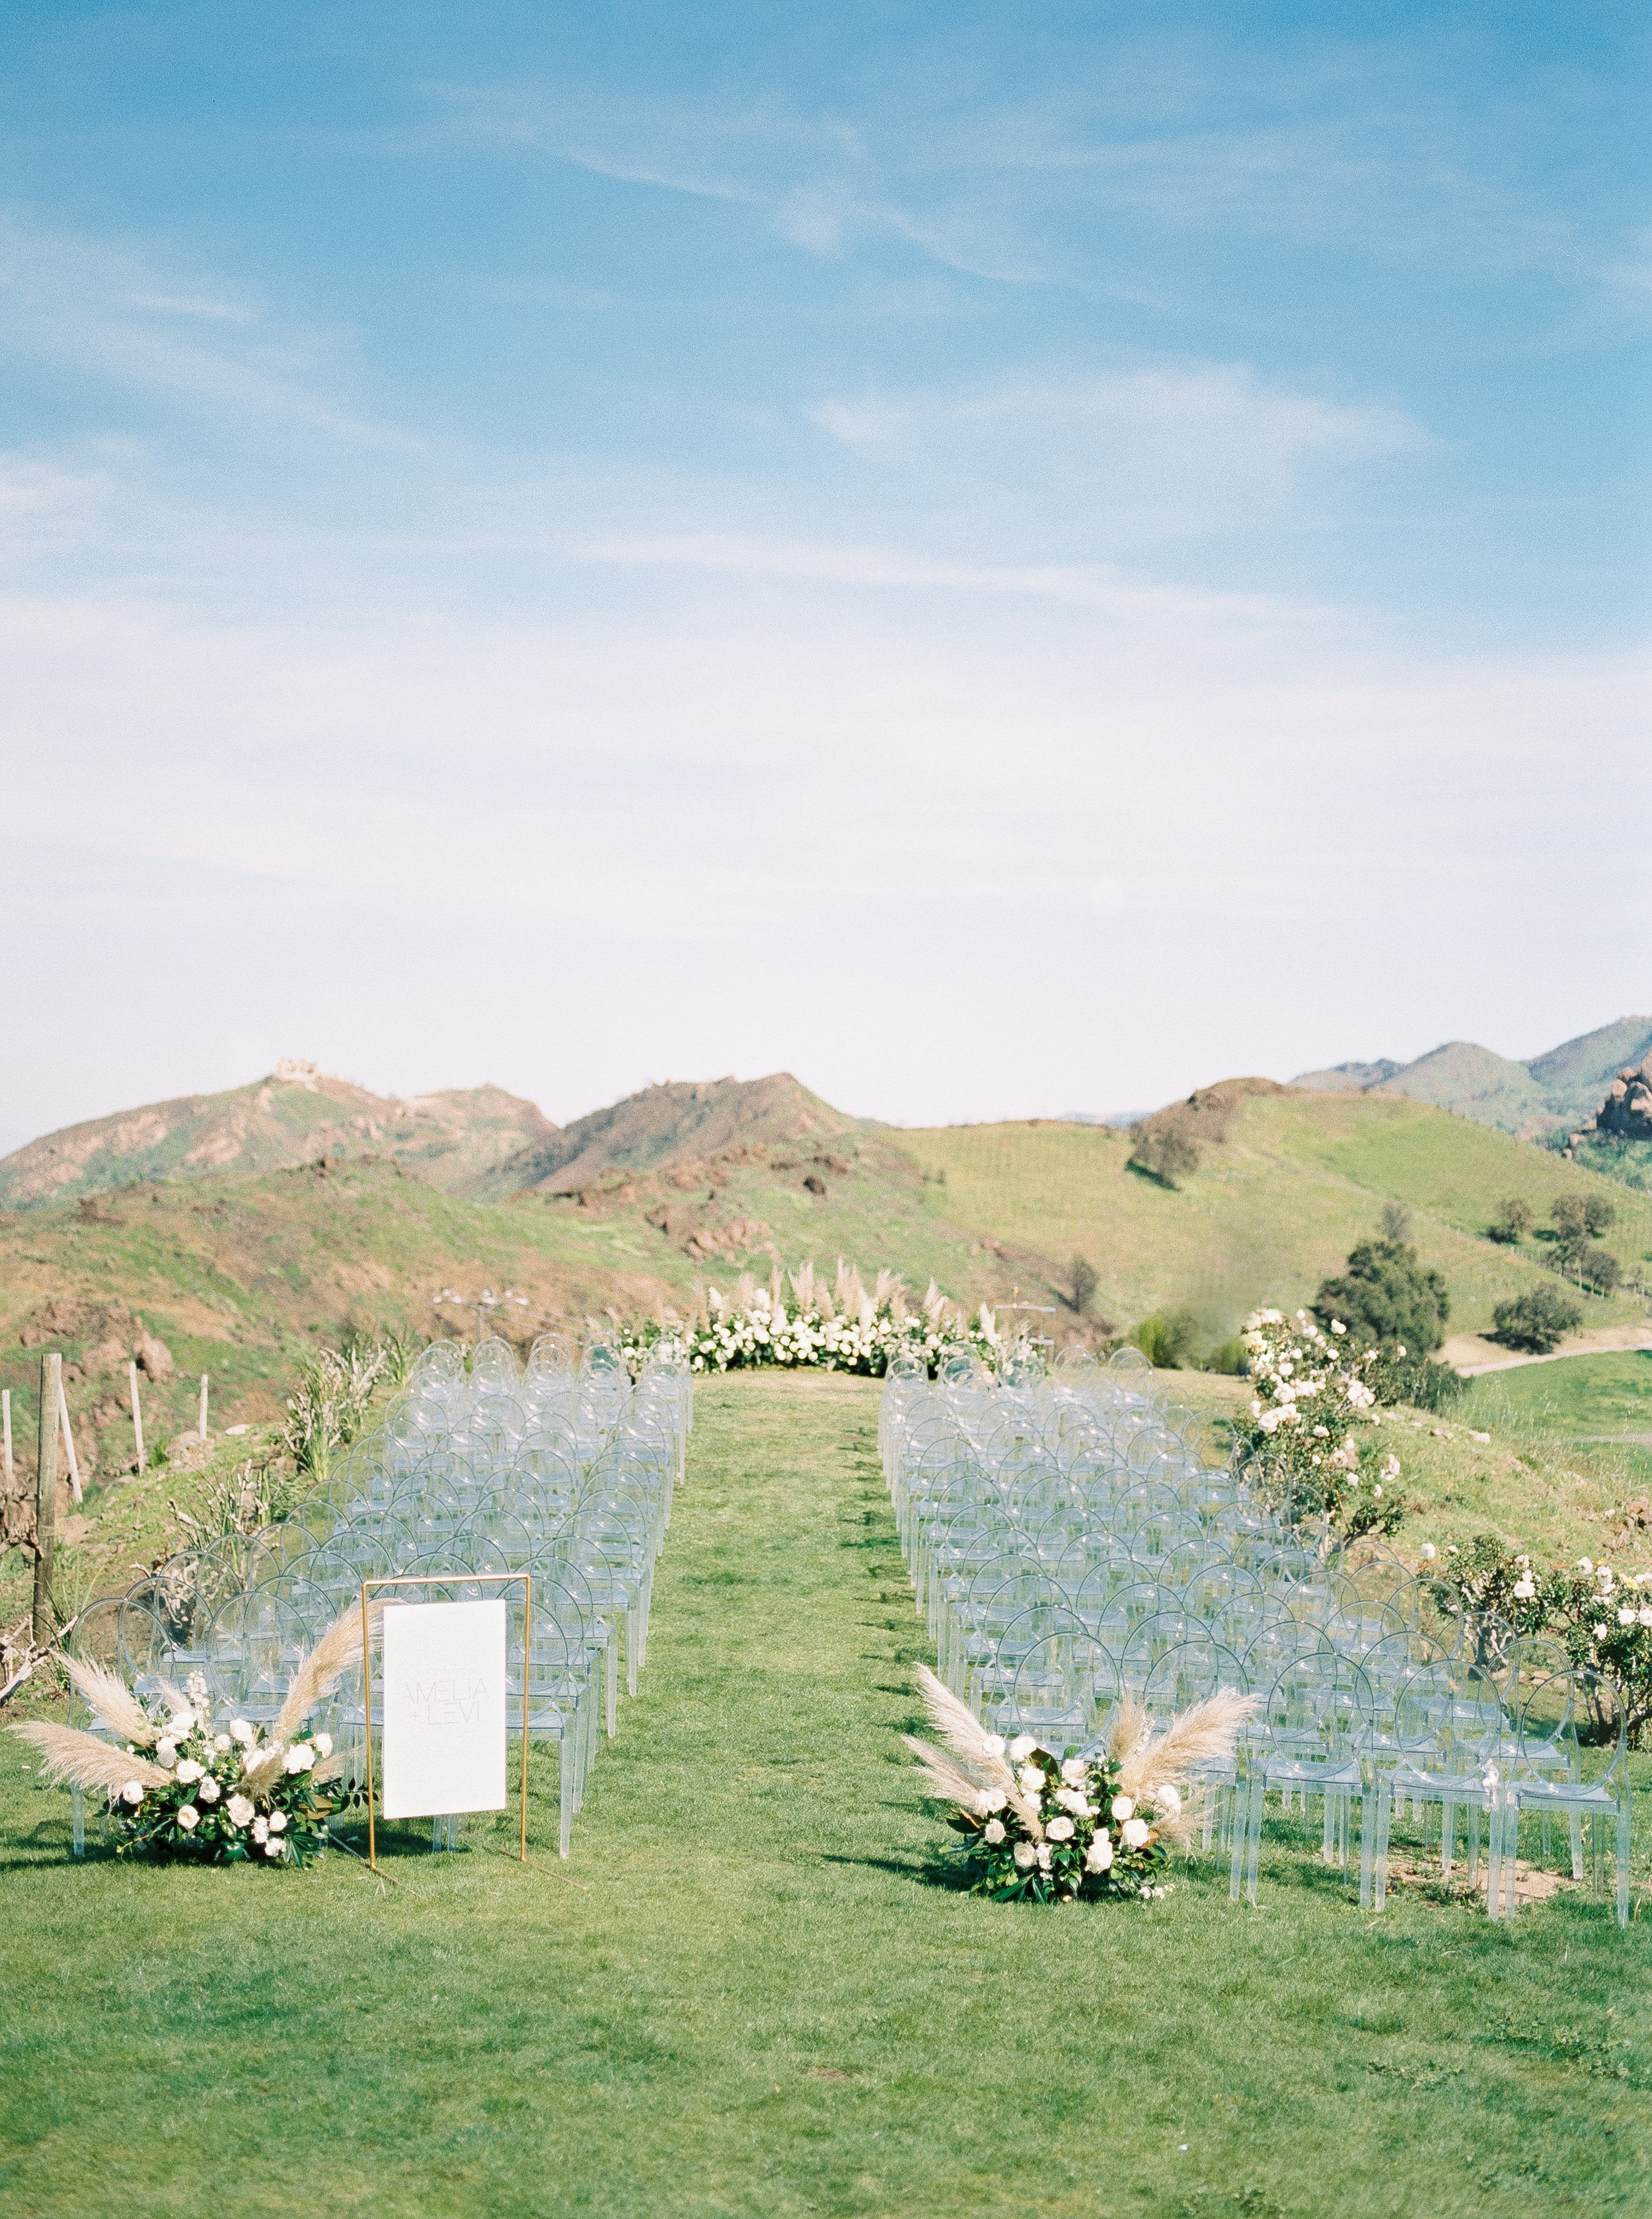 Levi & Amelia's Wedding - Natalie Schutt Photography - Film-48.jpg